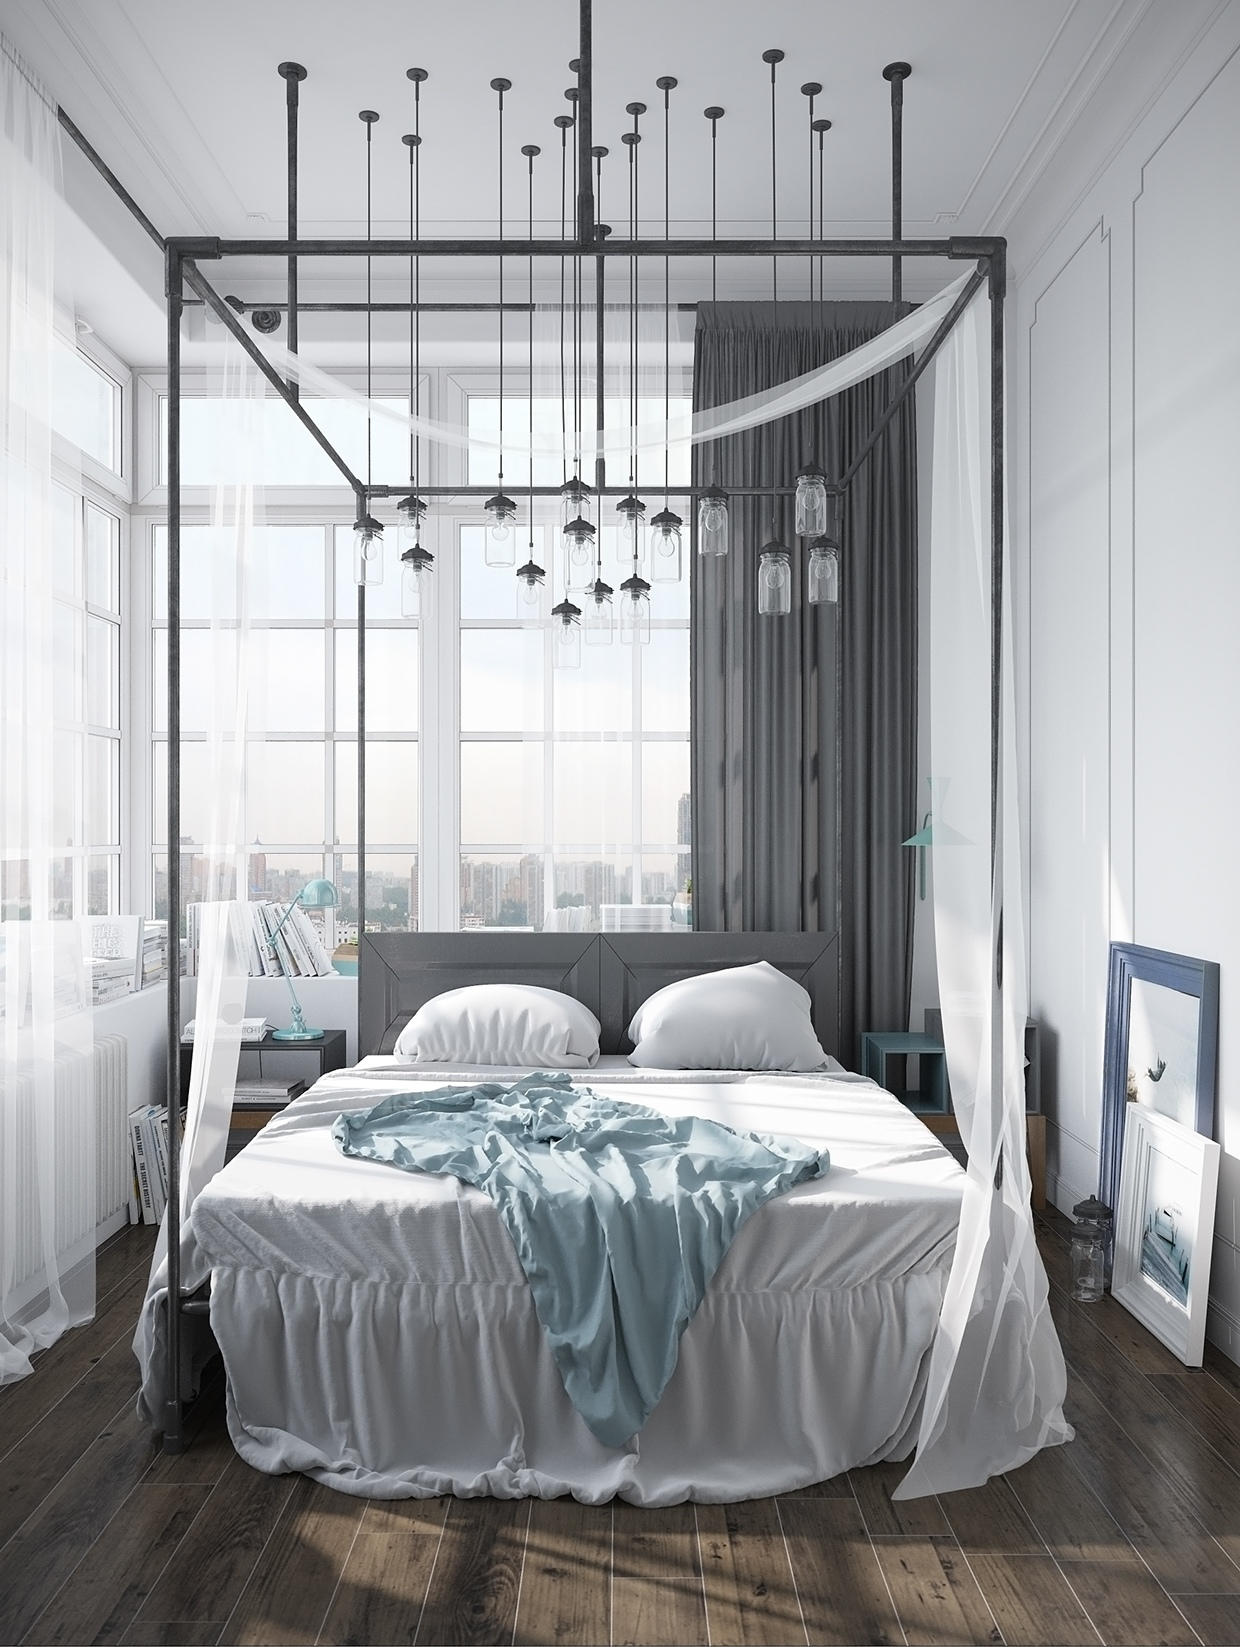 Awesome Canopy Bed - Stylish scandinavian apartment in murmansk